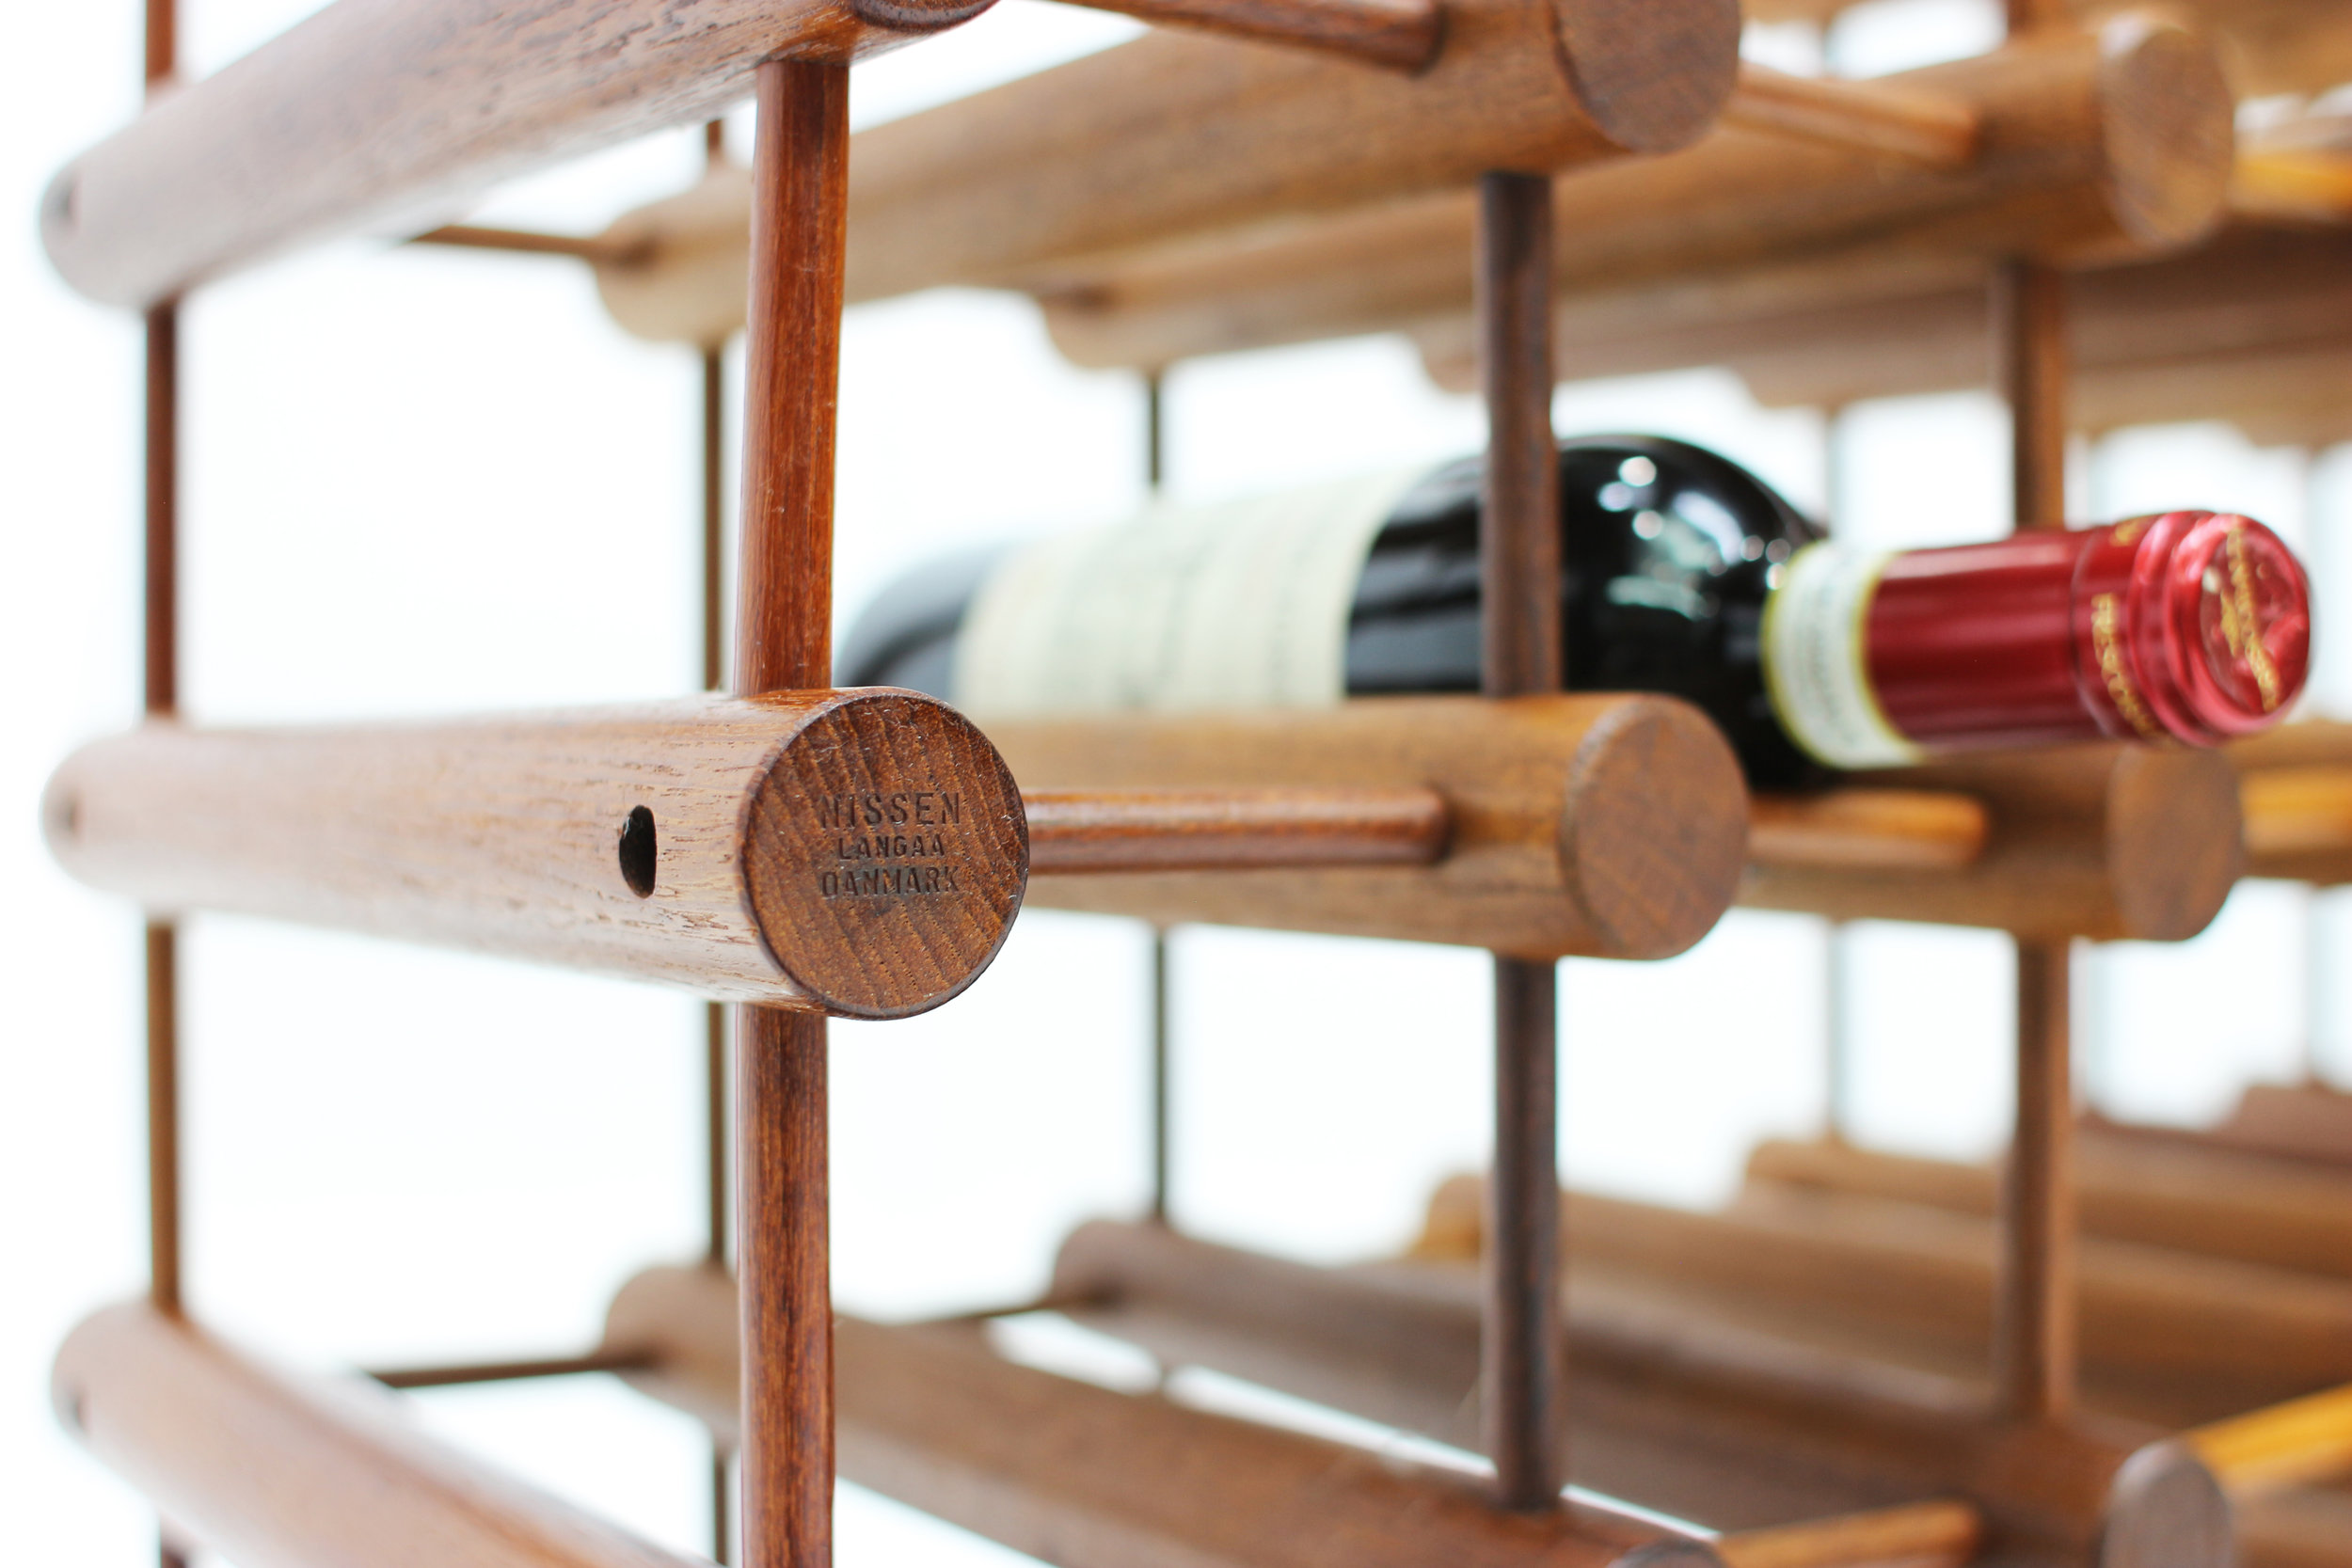 Danish Teak 60 Bottle Wine Rack by Nissen Langaa (4).jpg